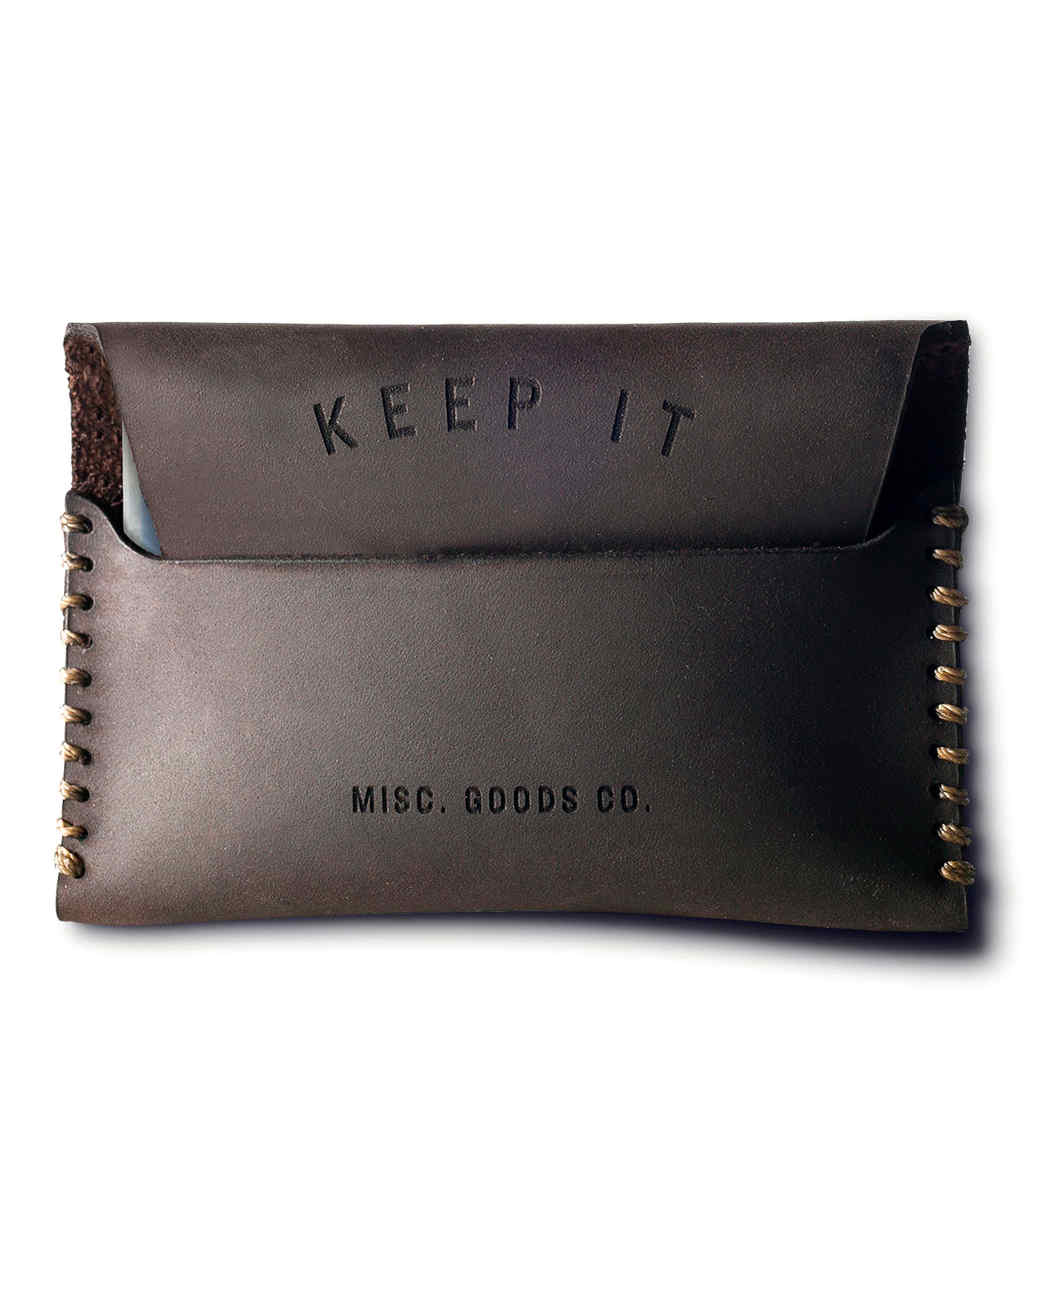 mgco-leather-wallet-0915.jpg